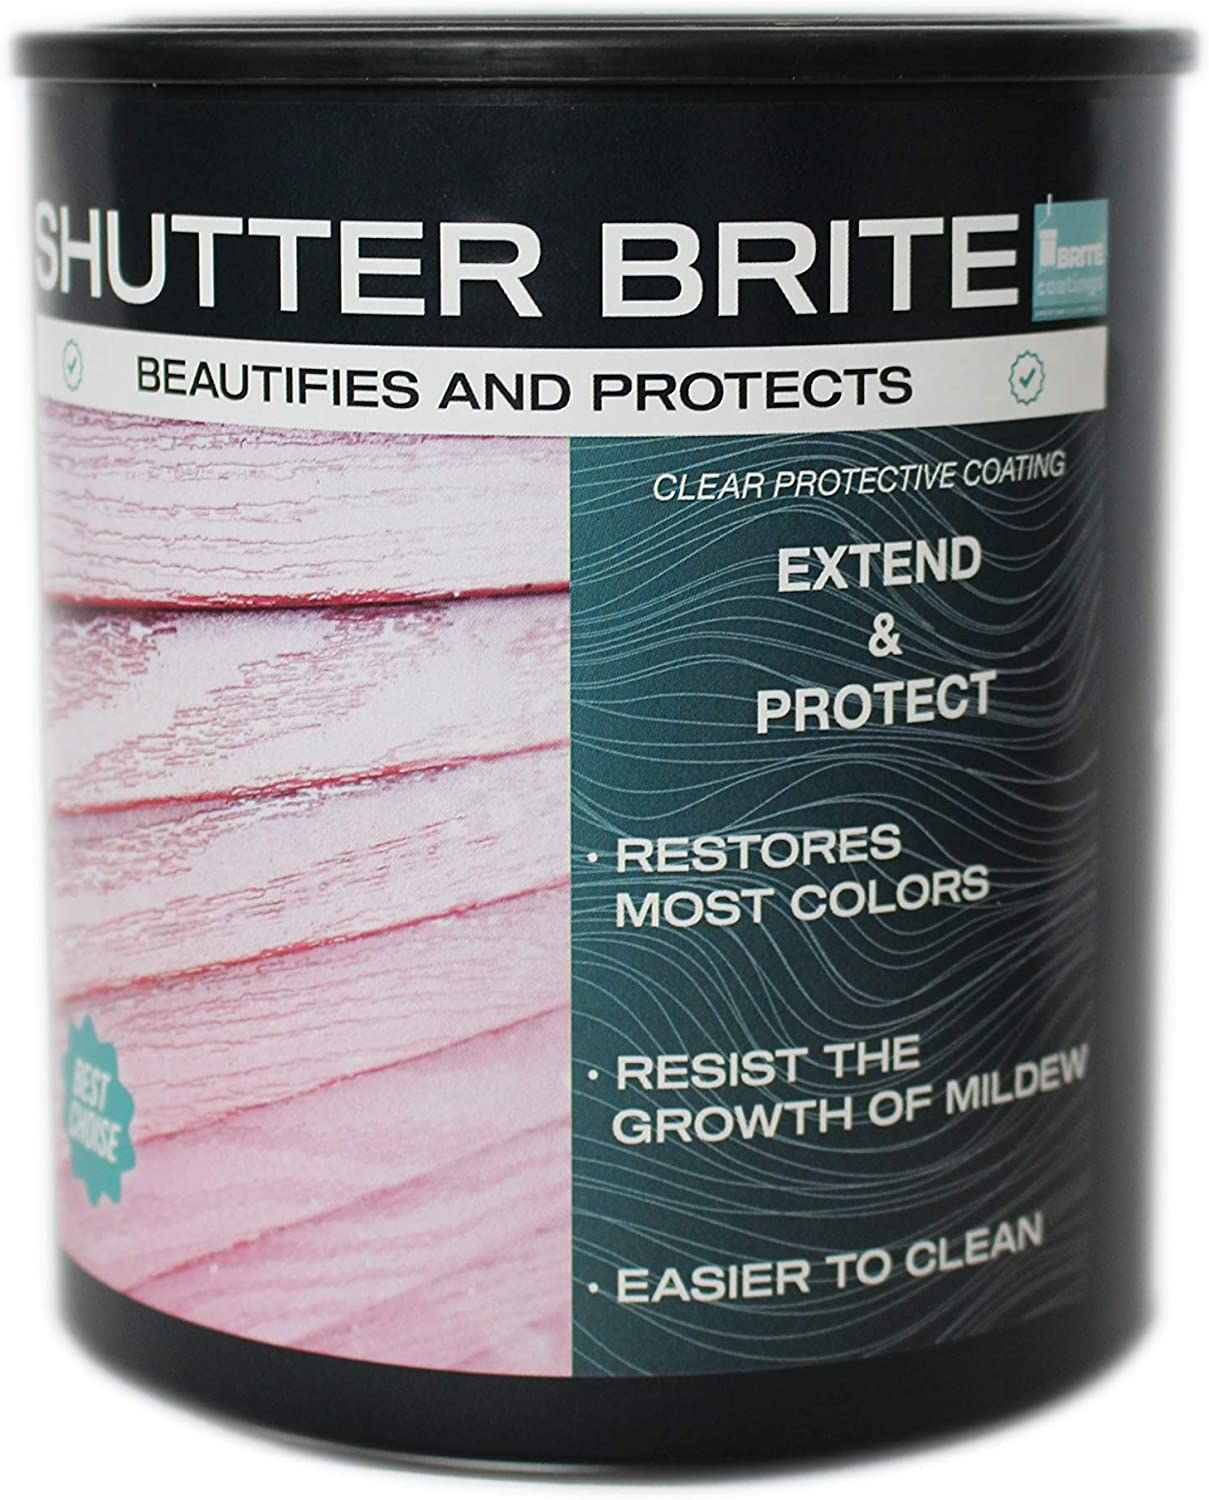 Shutter Brite Restore and Protect Faded Shutters Planters and virtually Any Outdoor Item. Mailboxes Lighting fixtures Patio Furniture